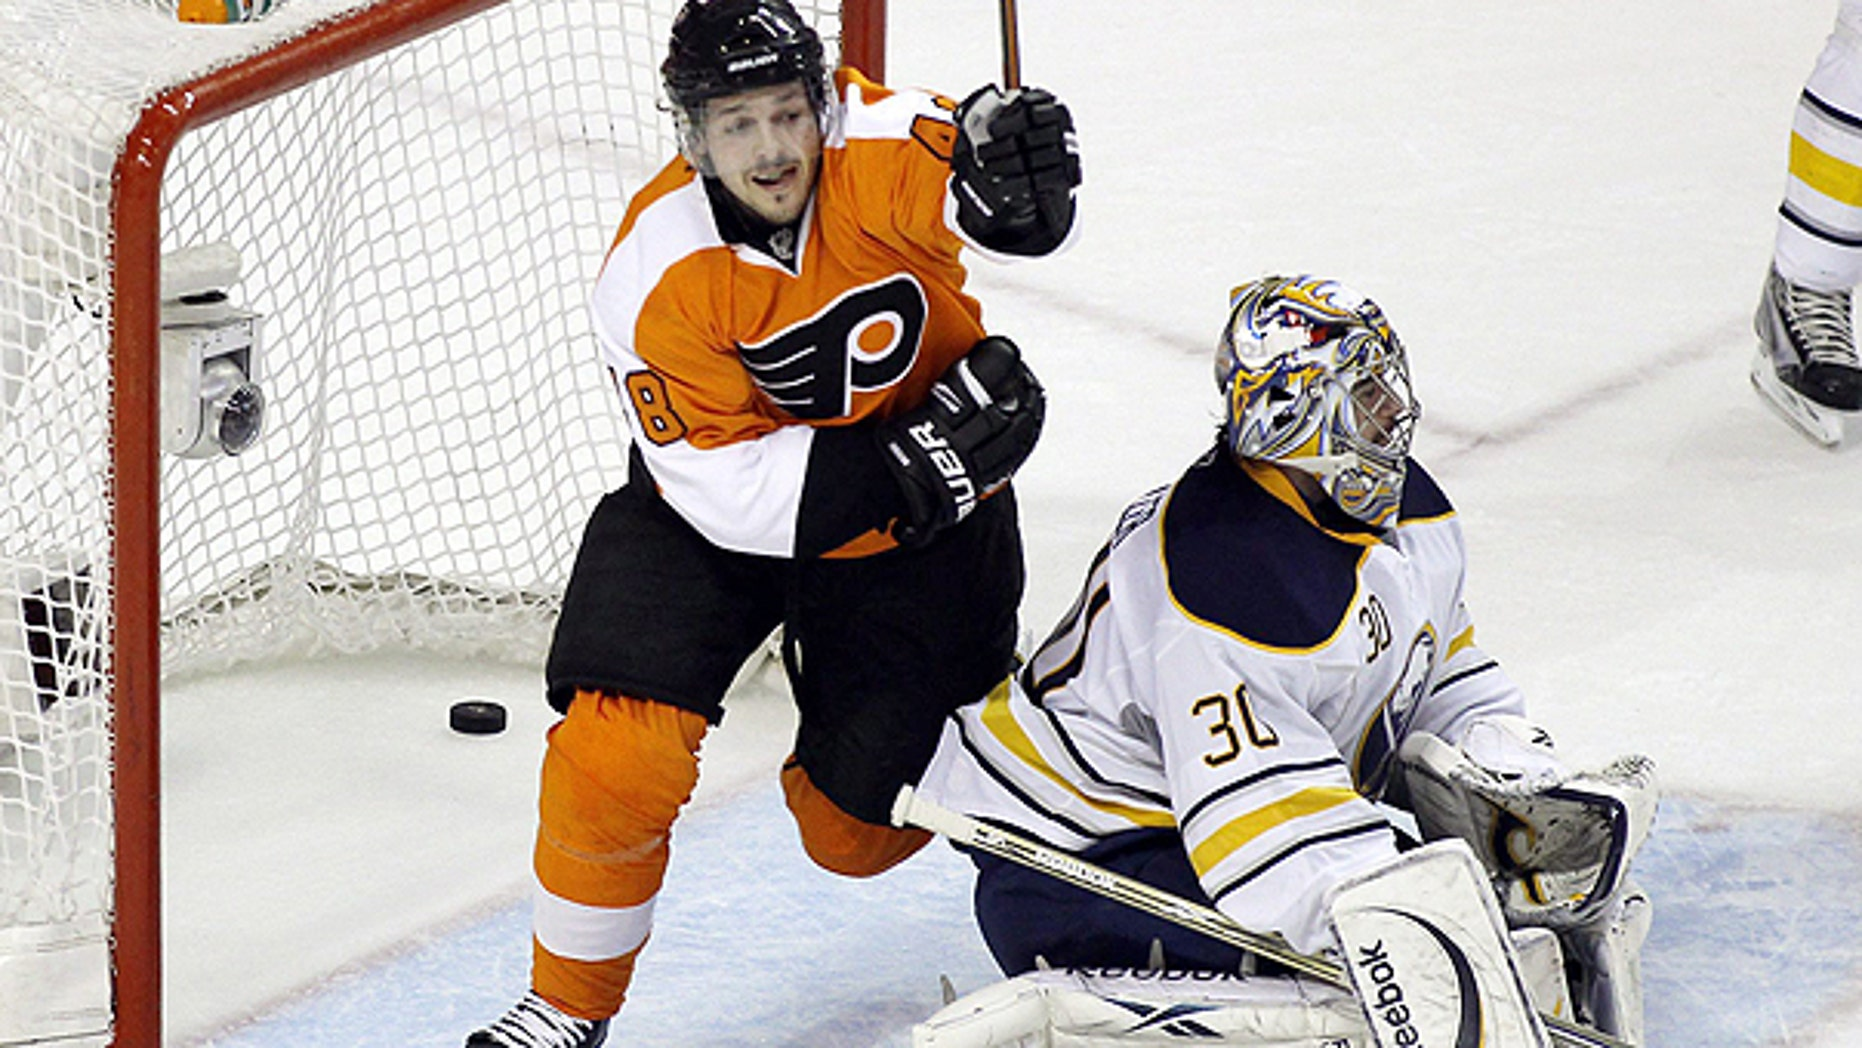 April 26: Philadelphia Flyers' Danny Briere reacts after Braydon Coburn's slap shot gets past Buffalo Sabres' goalie Ryan Miller in the first period in Game 7 of a first-round NHL Stanley Cup playoffs hockey series in Philadelphia.